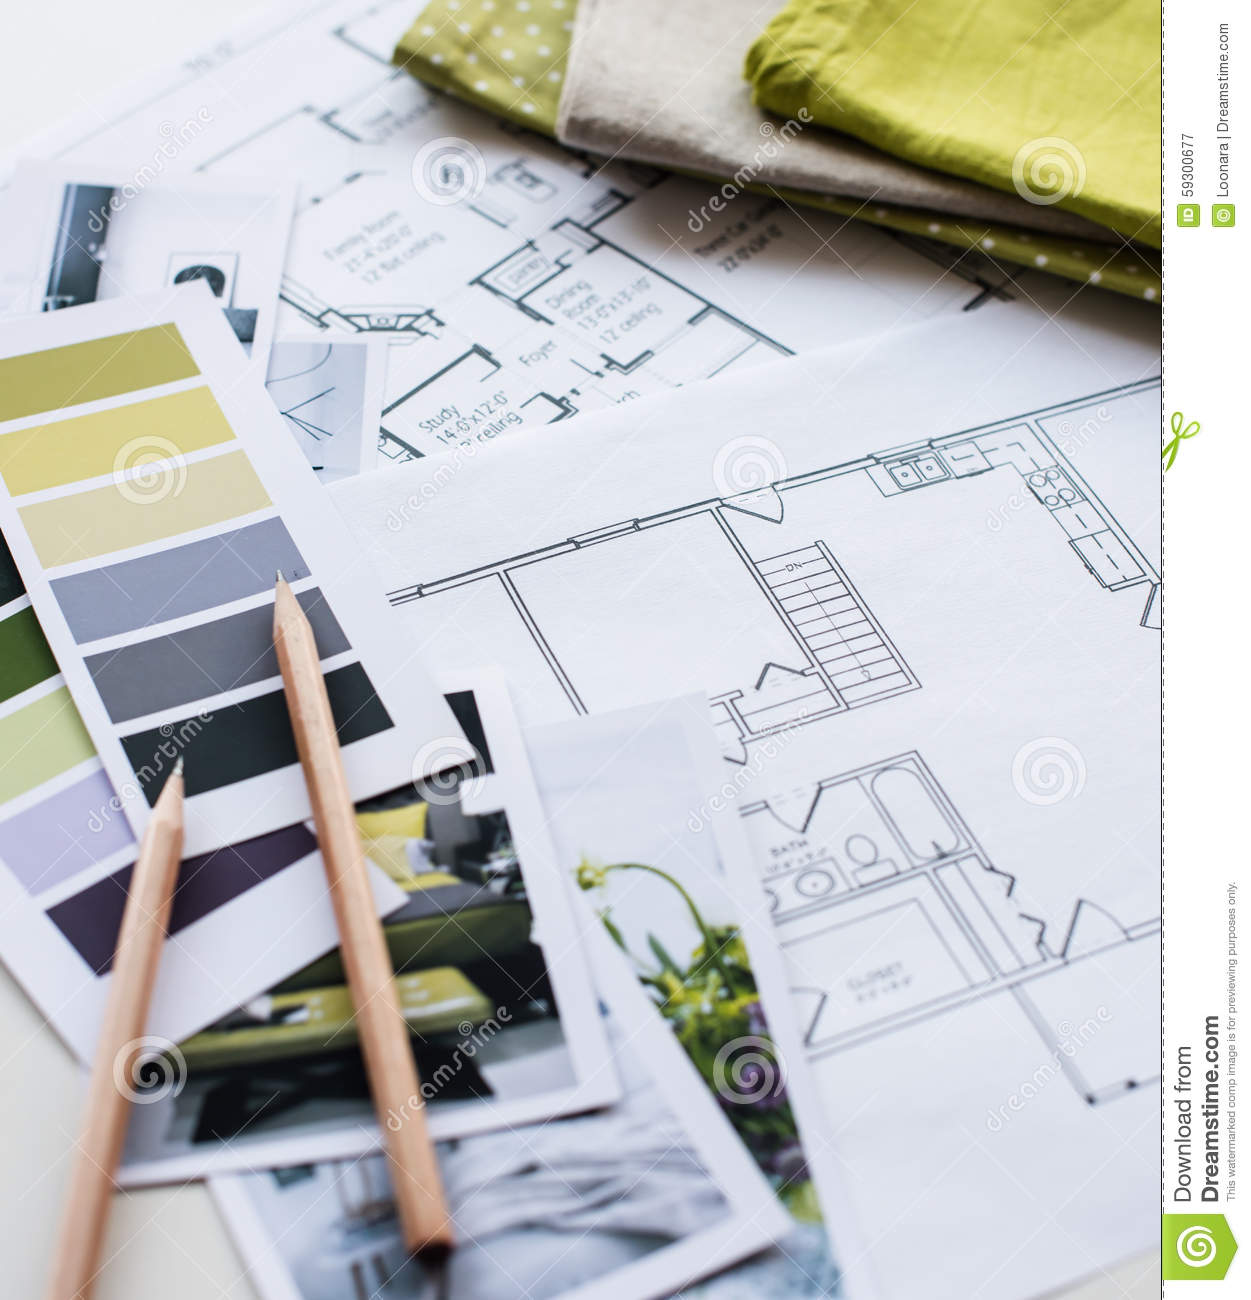 Interior Designers At Work interior designers working table stock photo - image: 59300771